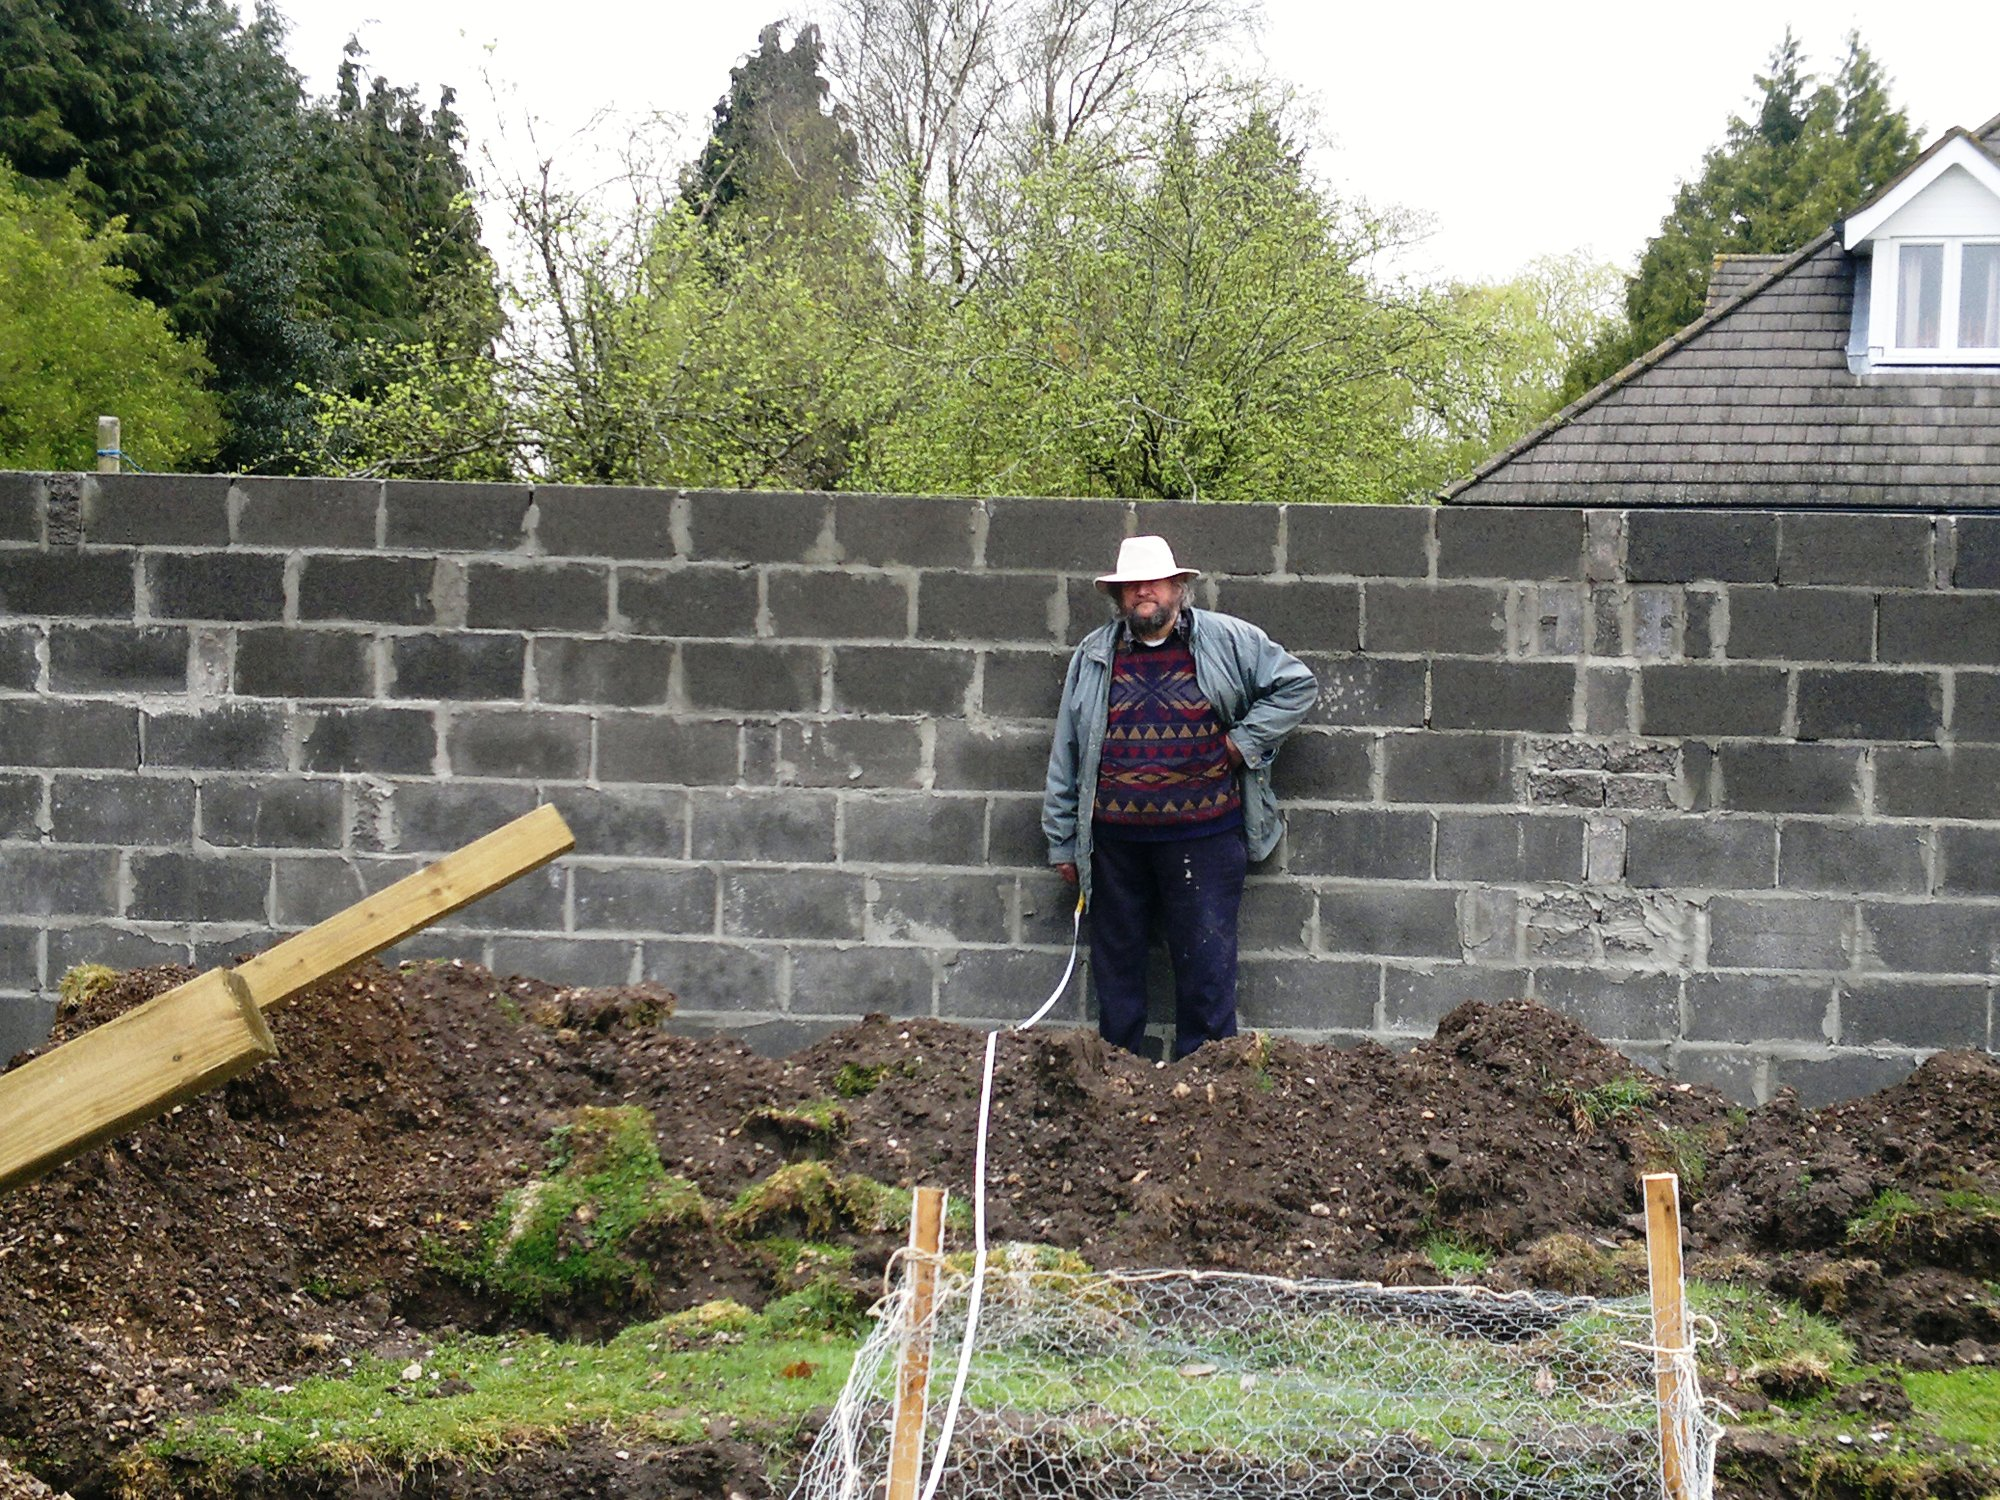 My dad, wondering why I am mucking about taking pictures when there is measuring to be done